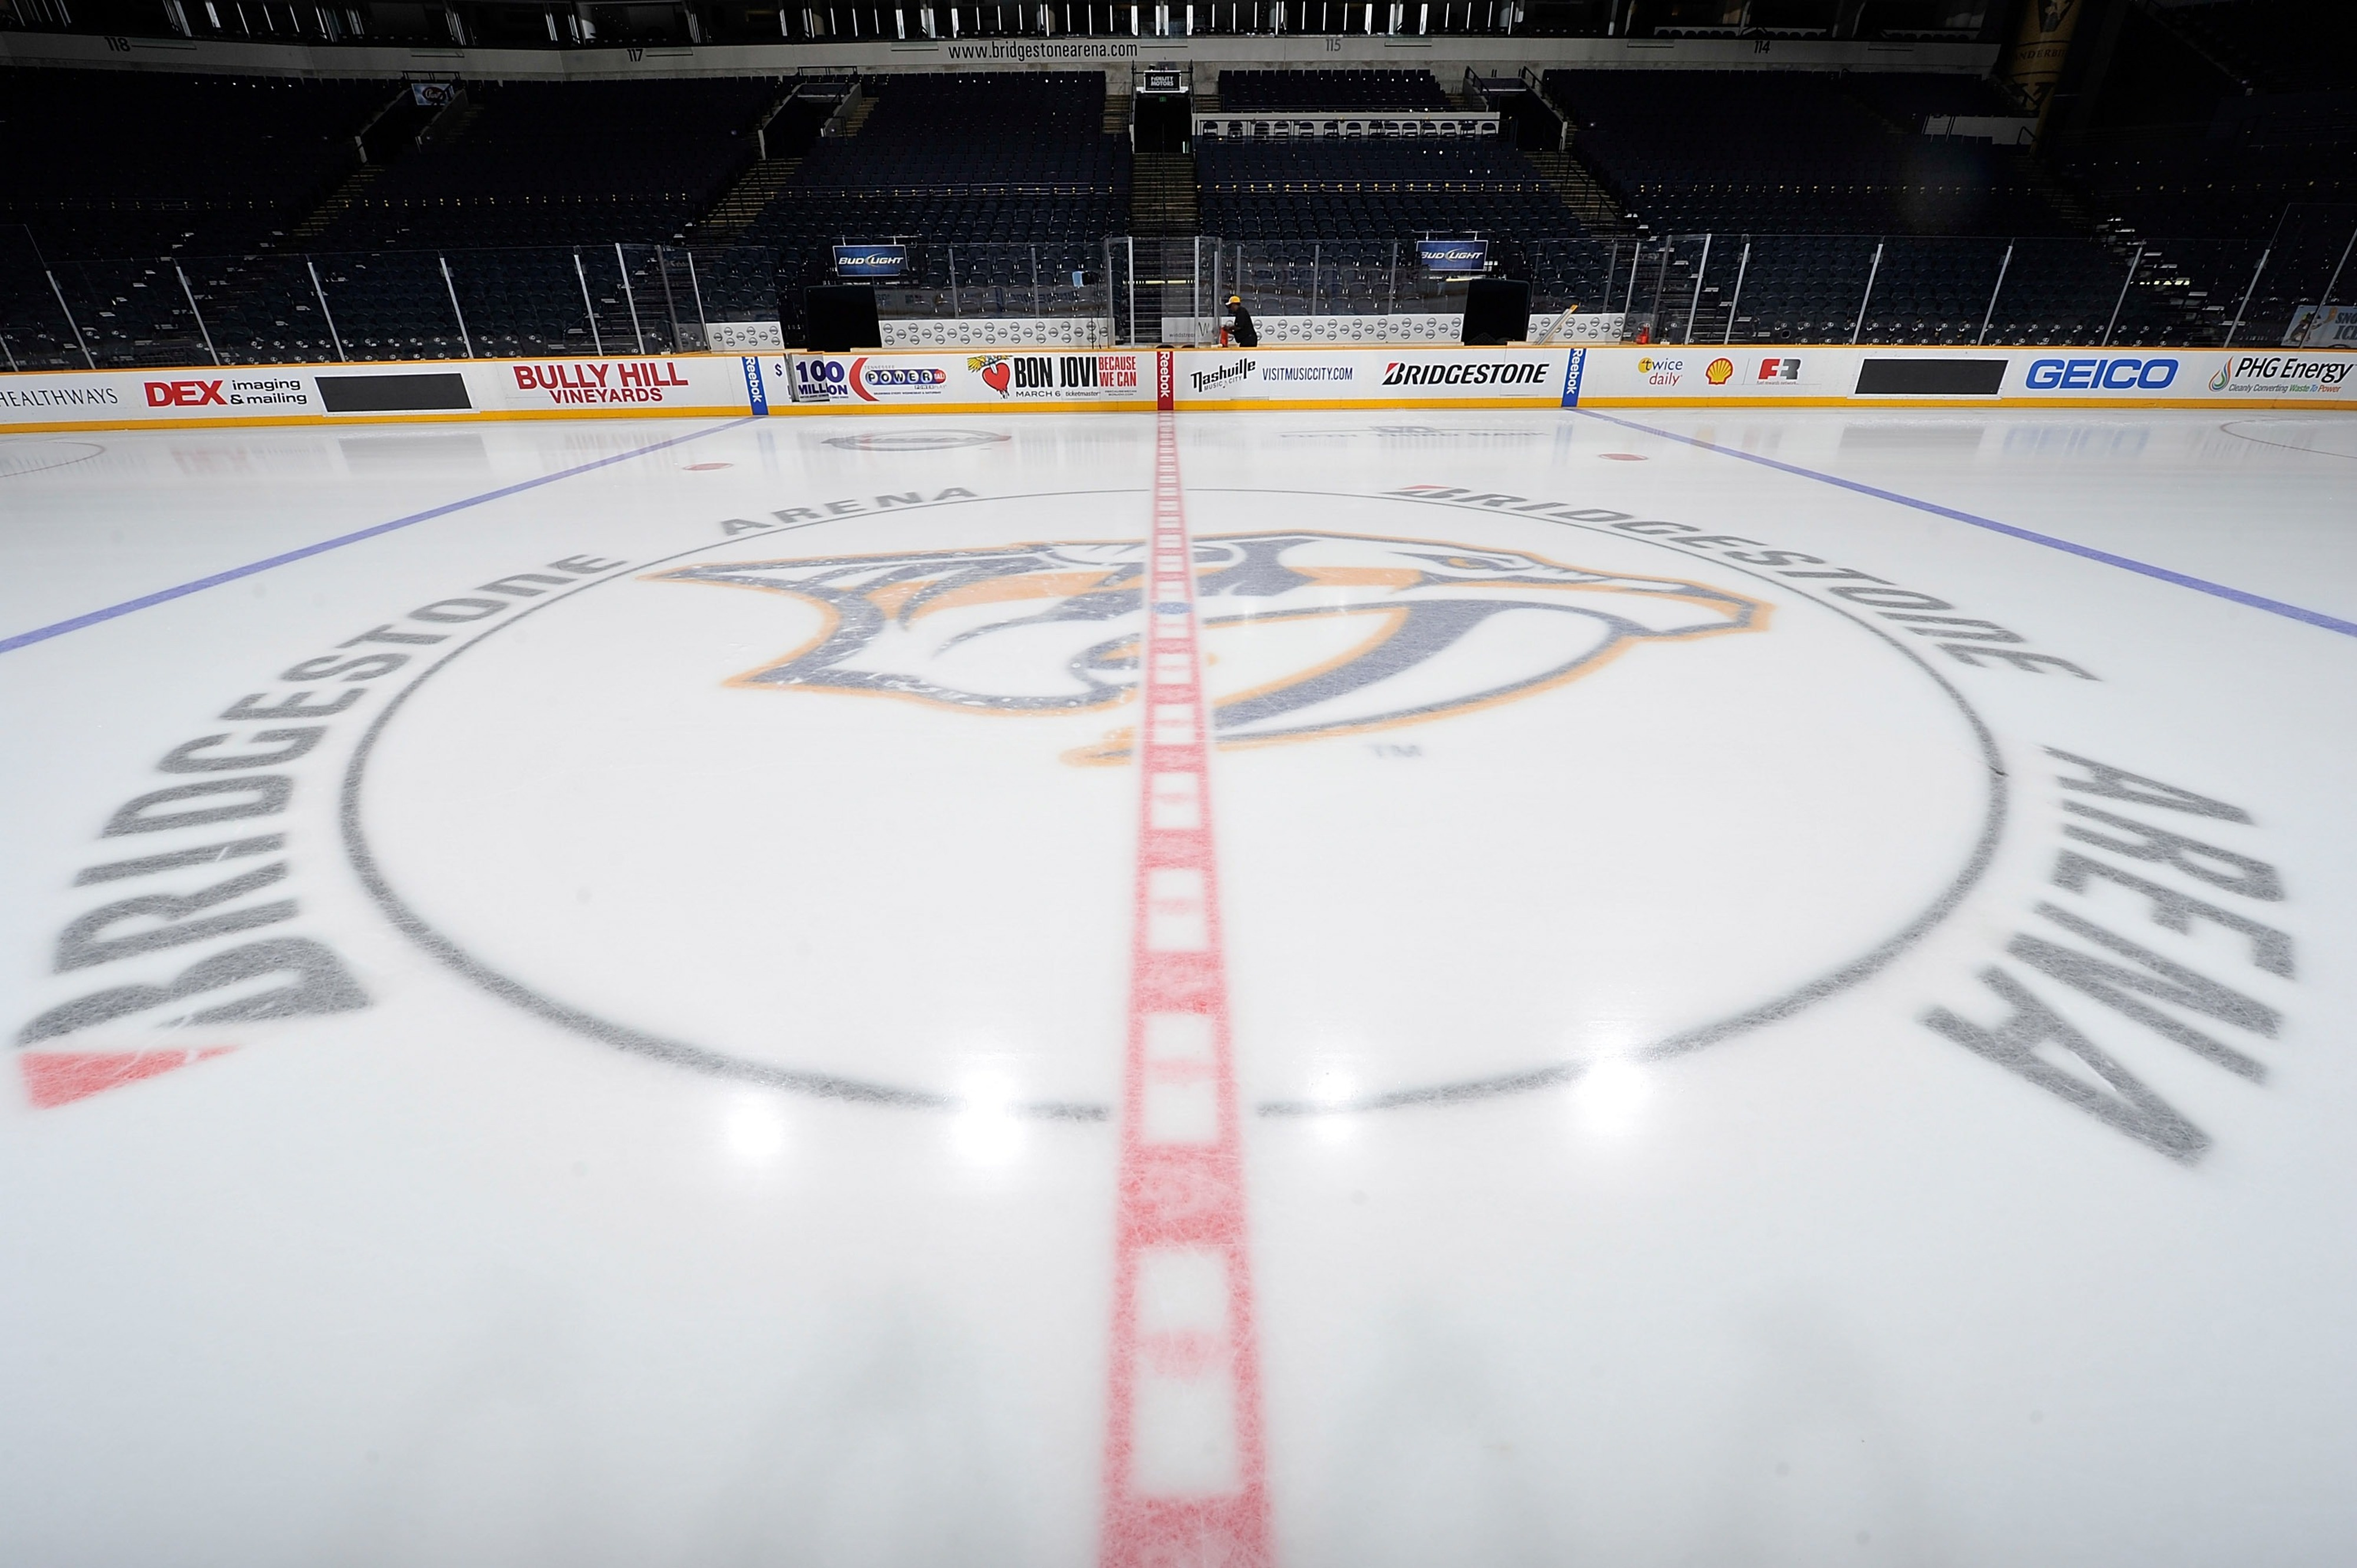 When will the Preds earn a banner to hang over the ice at Bridgestone Arena?